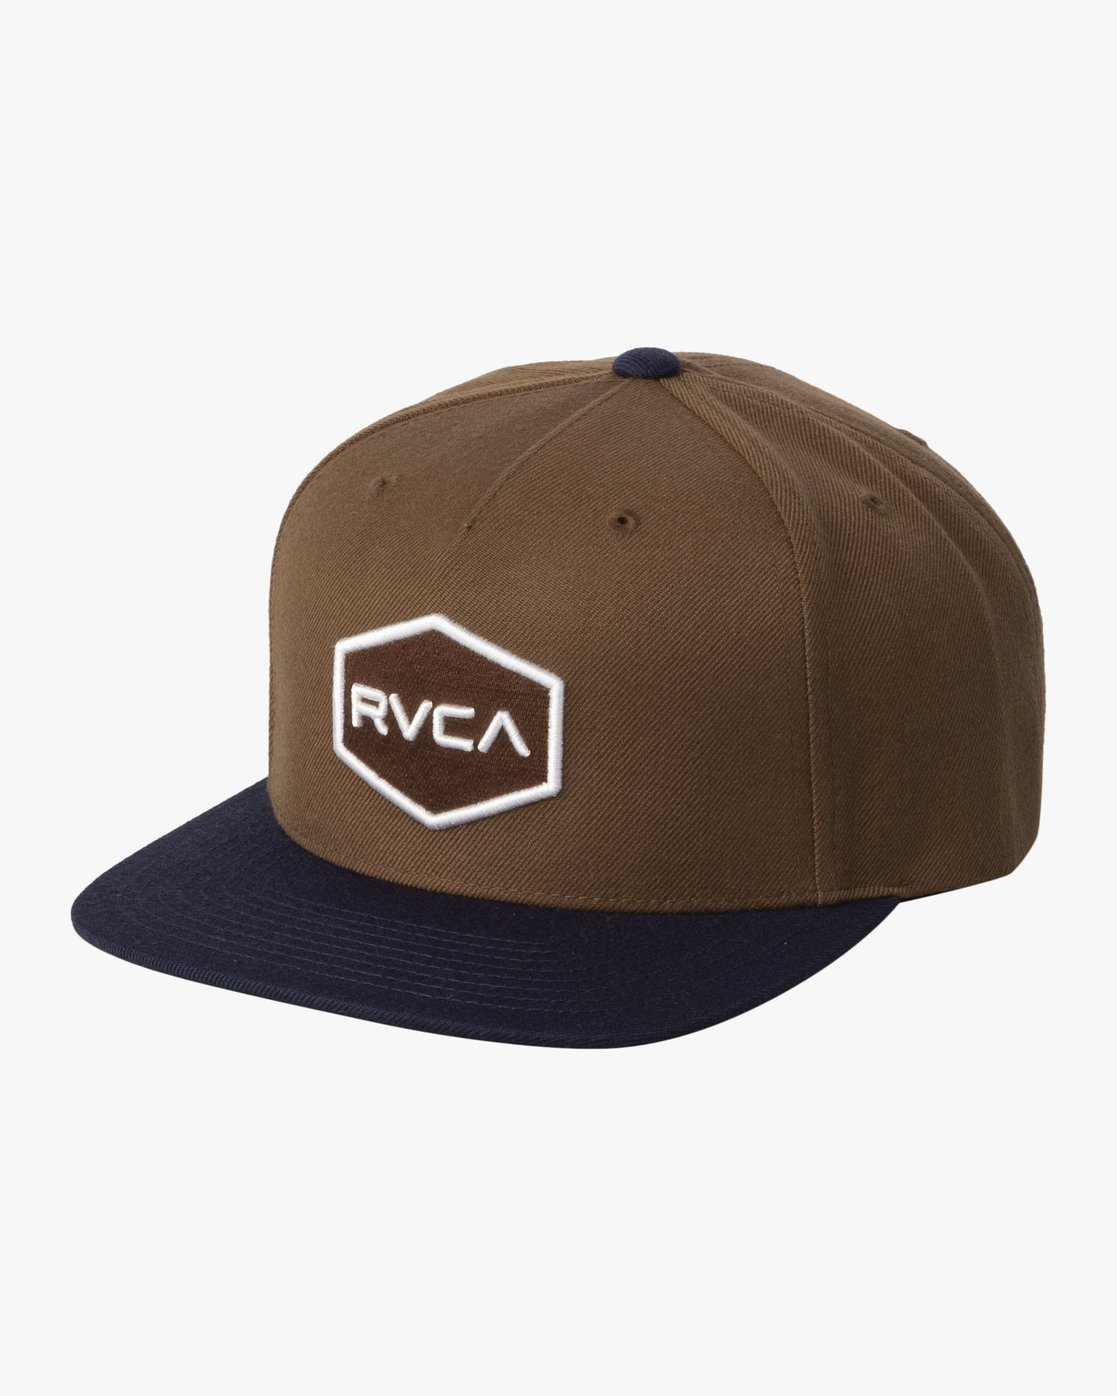 0 COMMONWEALTH SNAPBACK HAT Brown MDAHWCWS RVCA